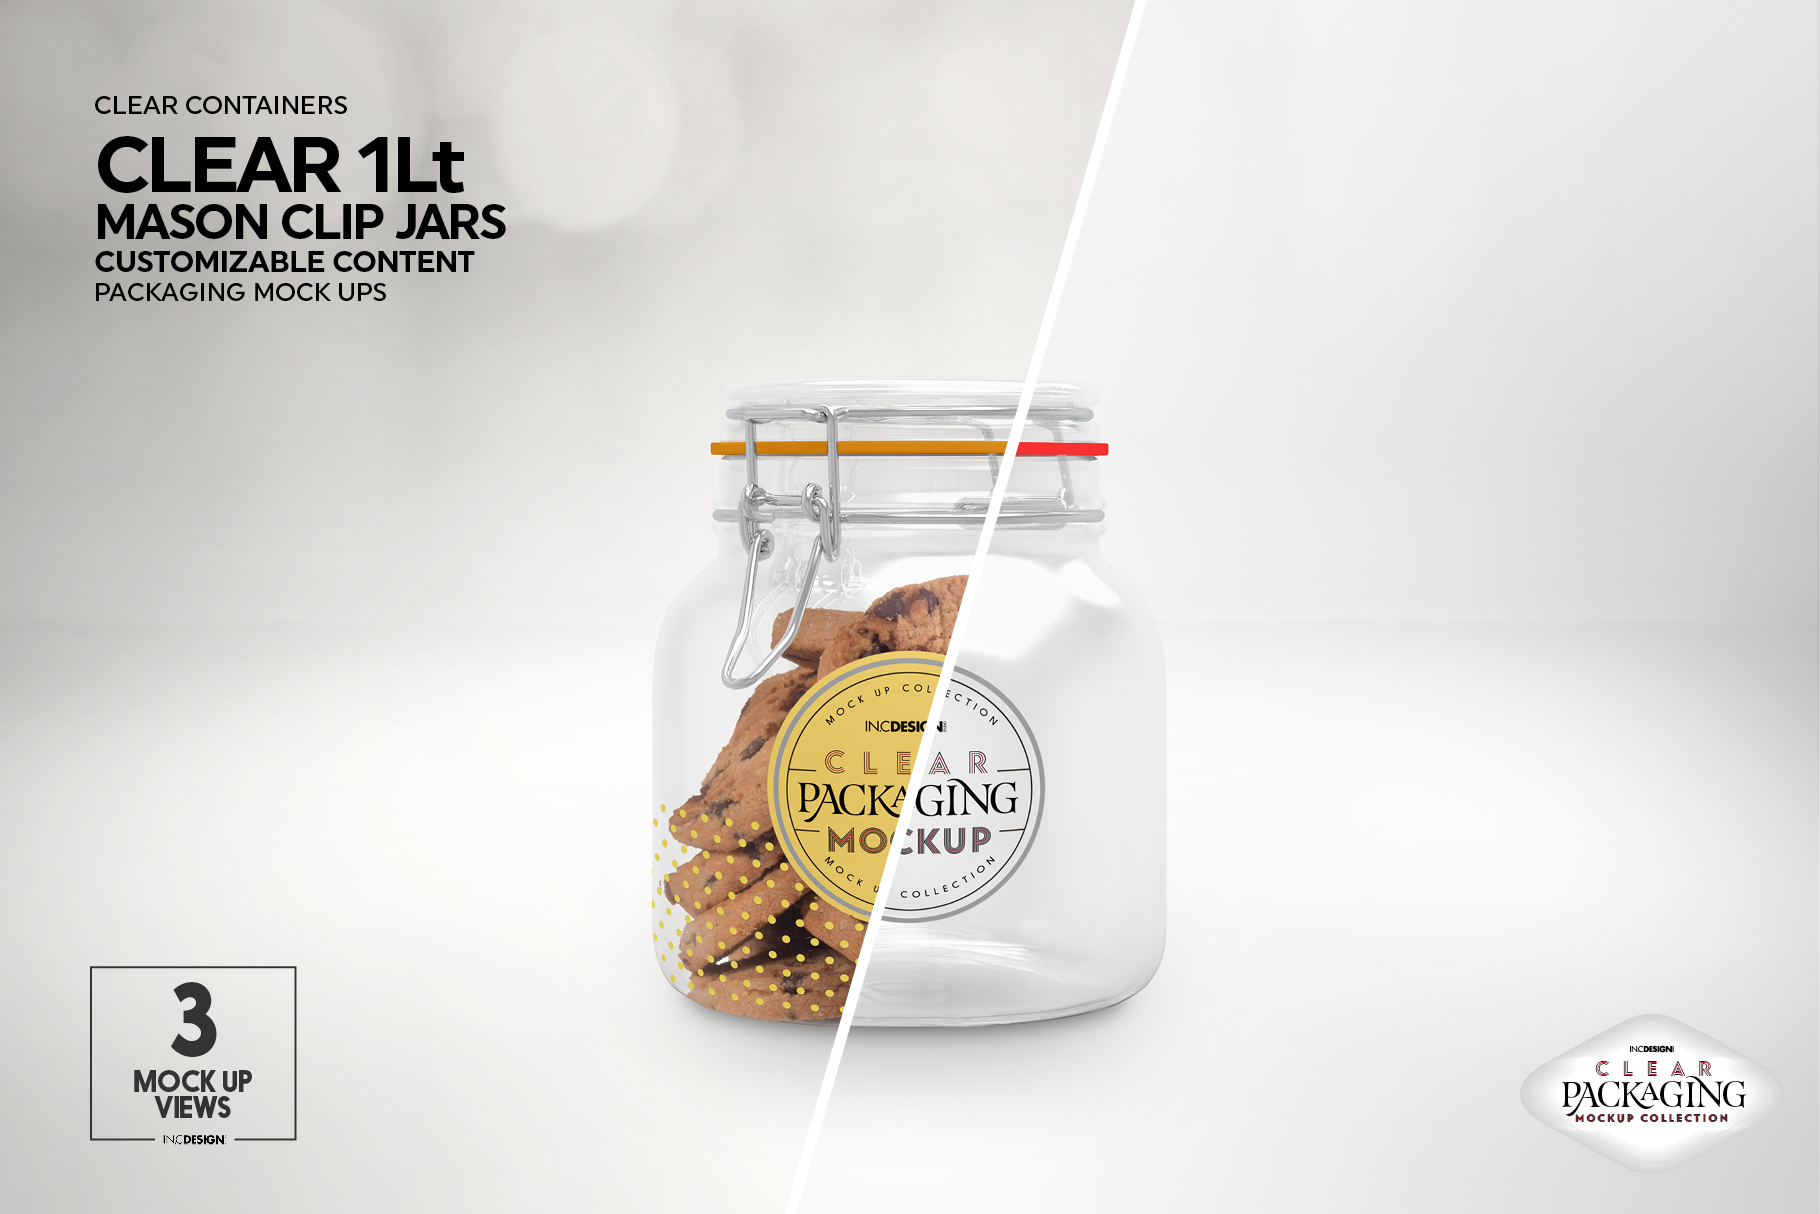 Clear 1Liter Mason Clip Jar Packaging Mockup example image 2